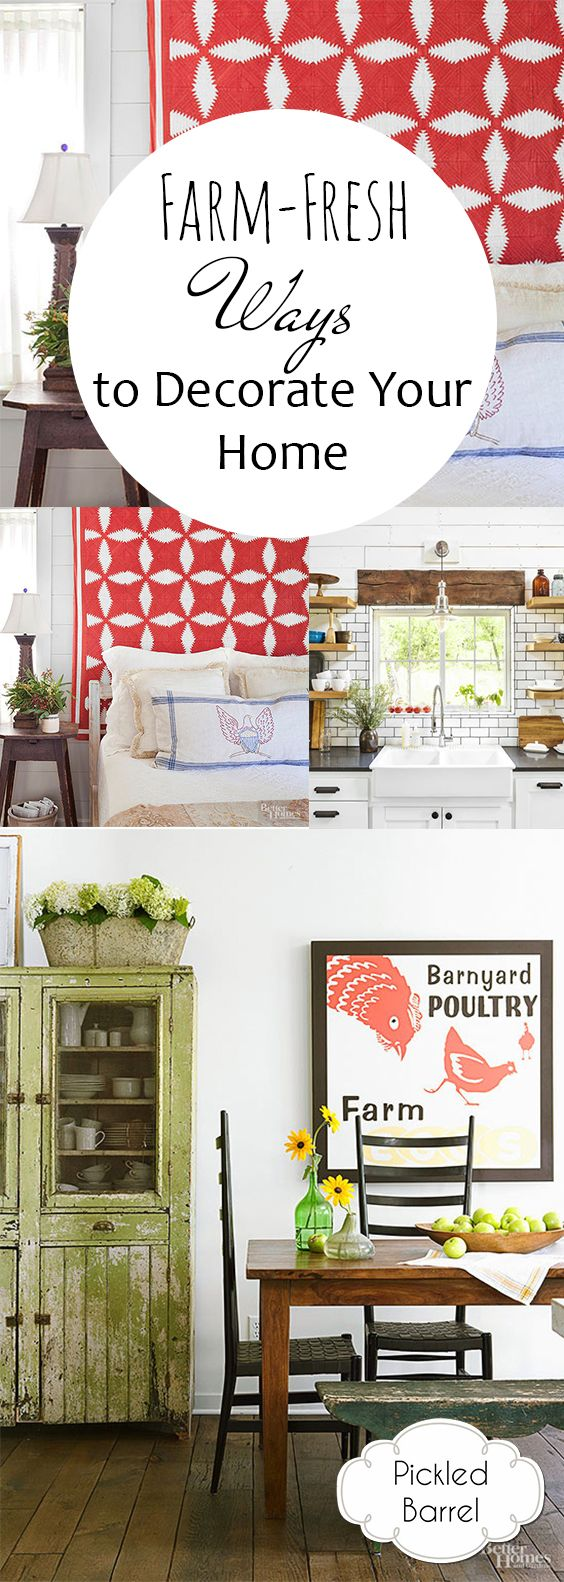 Farm-Fresh Ways to Decorate Your Home | Pinterest | Decorating ...